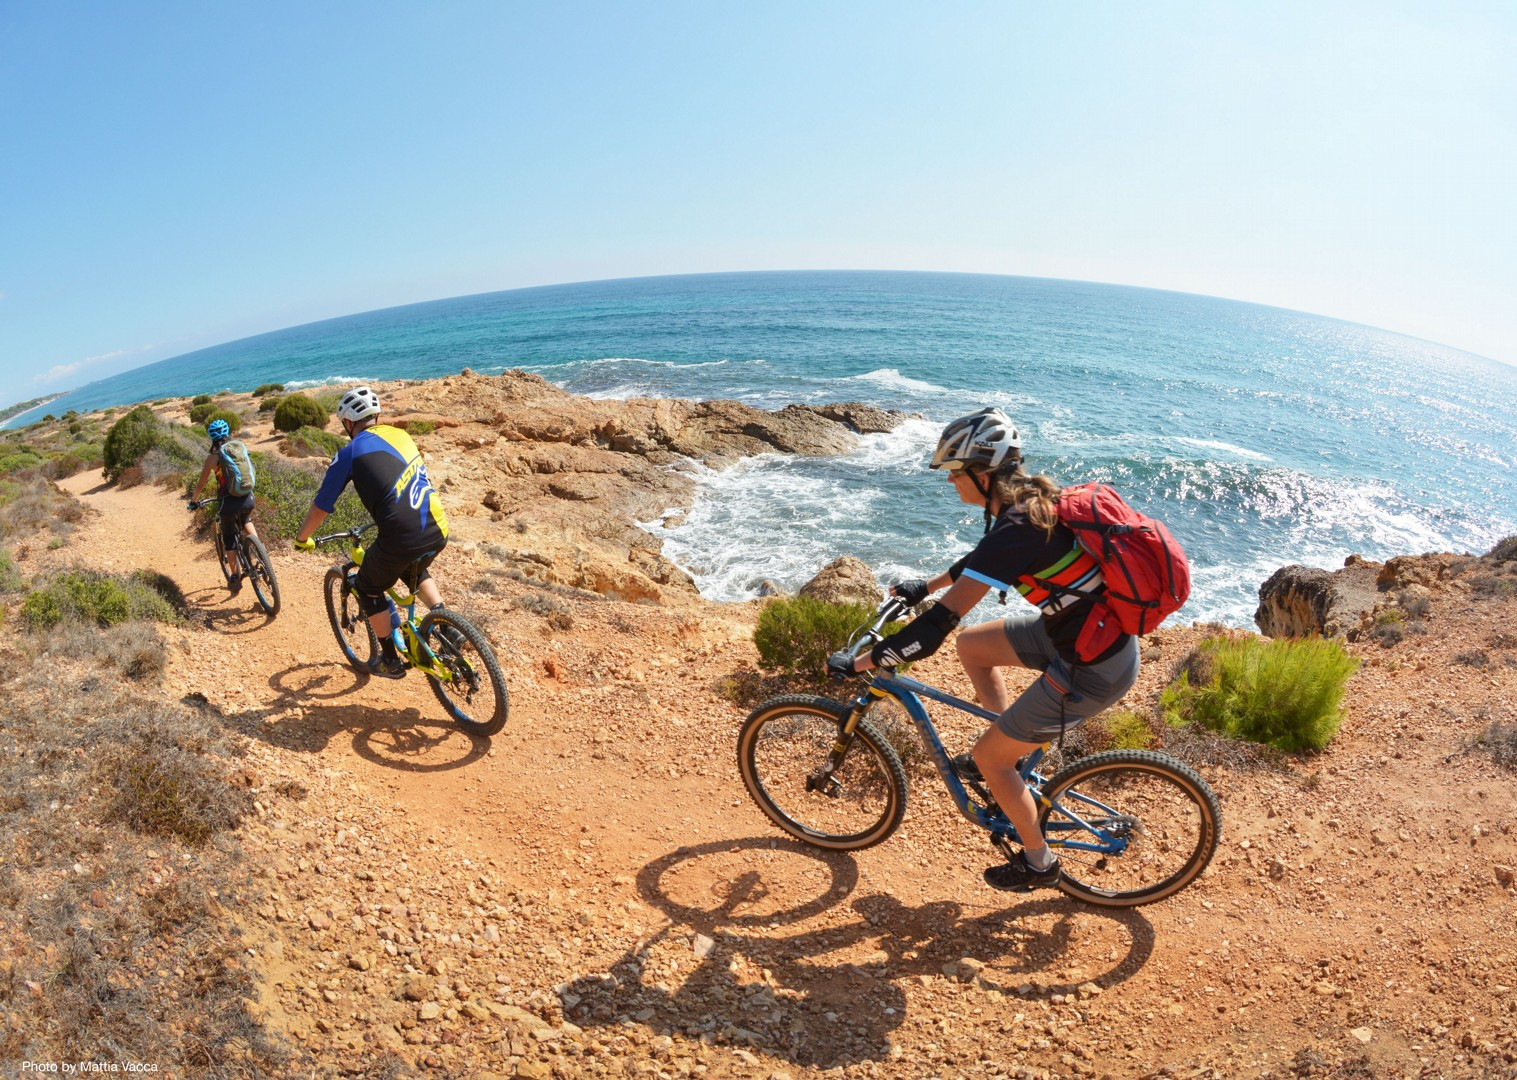 biking-enduro-in-italy-sardinia-mountain-bike-holiday.jpg - Sardinia - Sardinian Enduro - Guided Mountain Bike Holiday - Mountain Biking